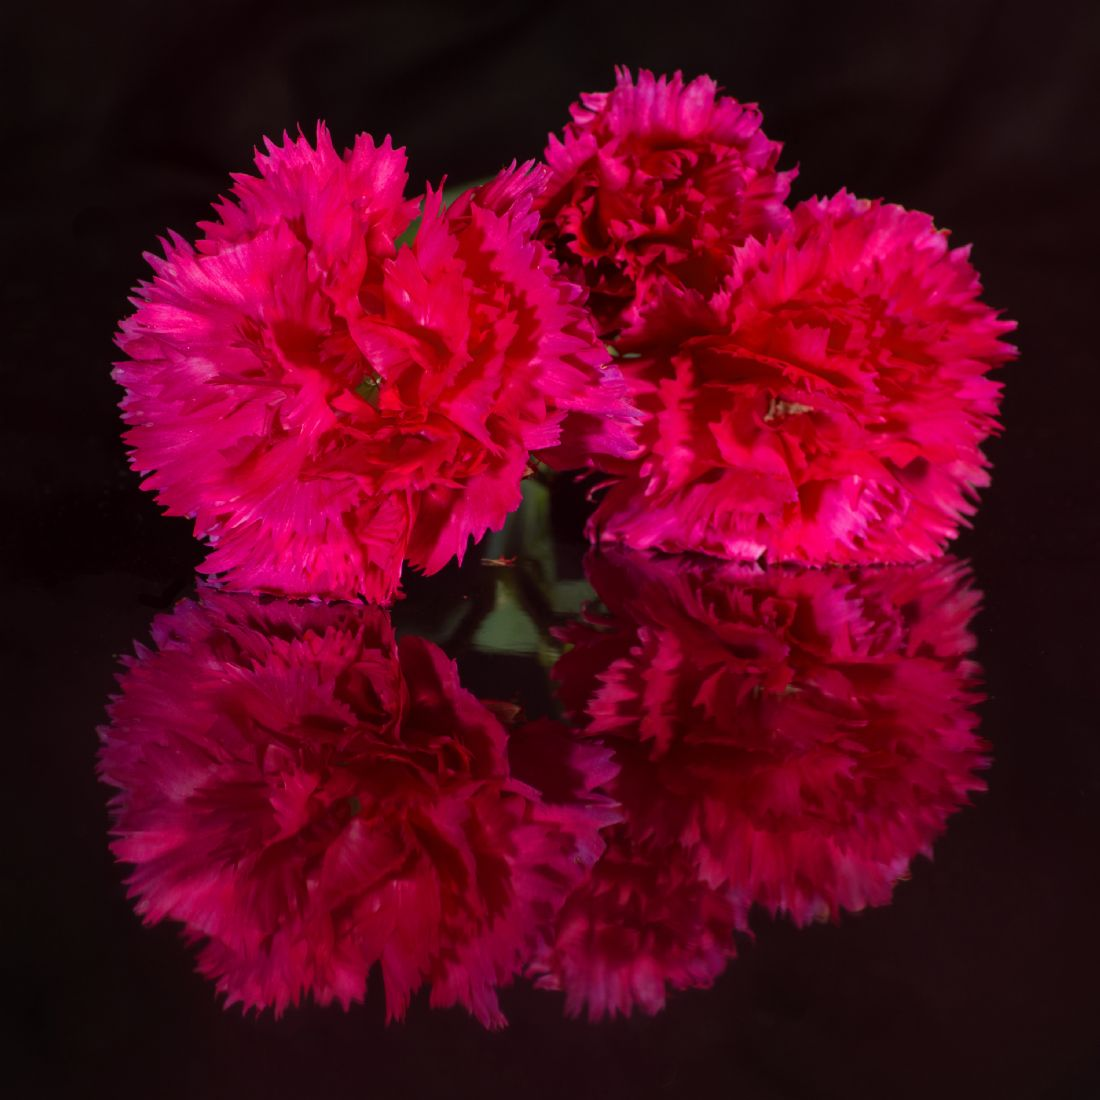 Peter Hemington | Three carnations